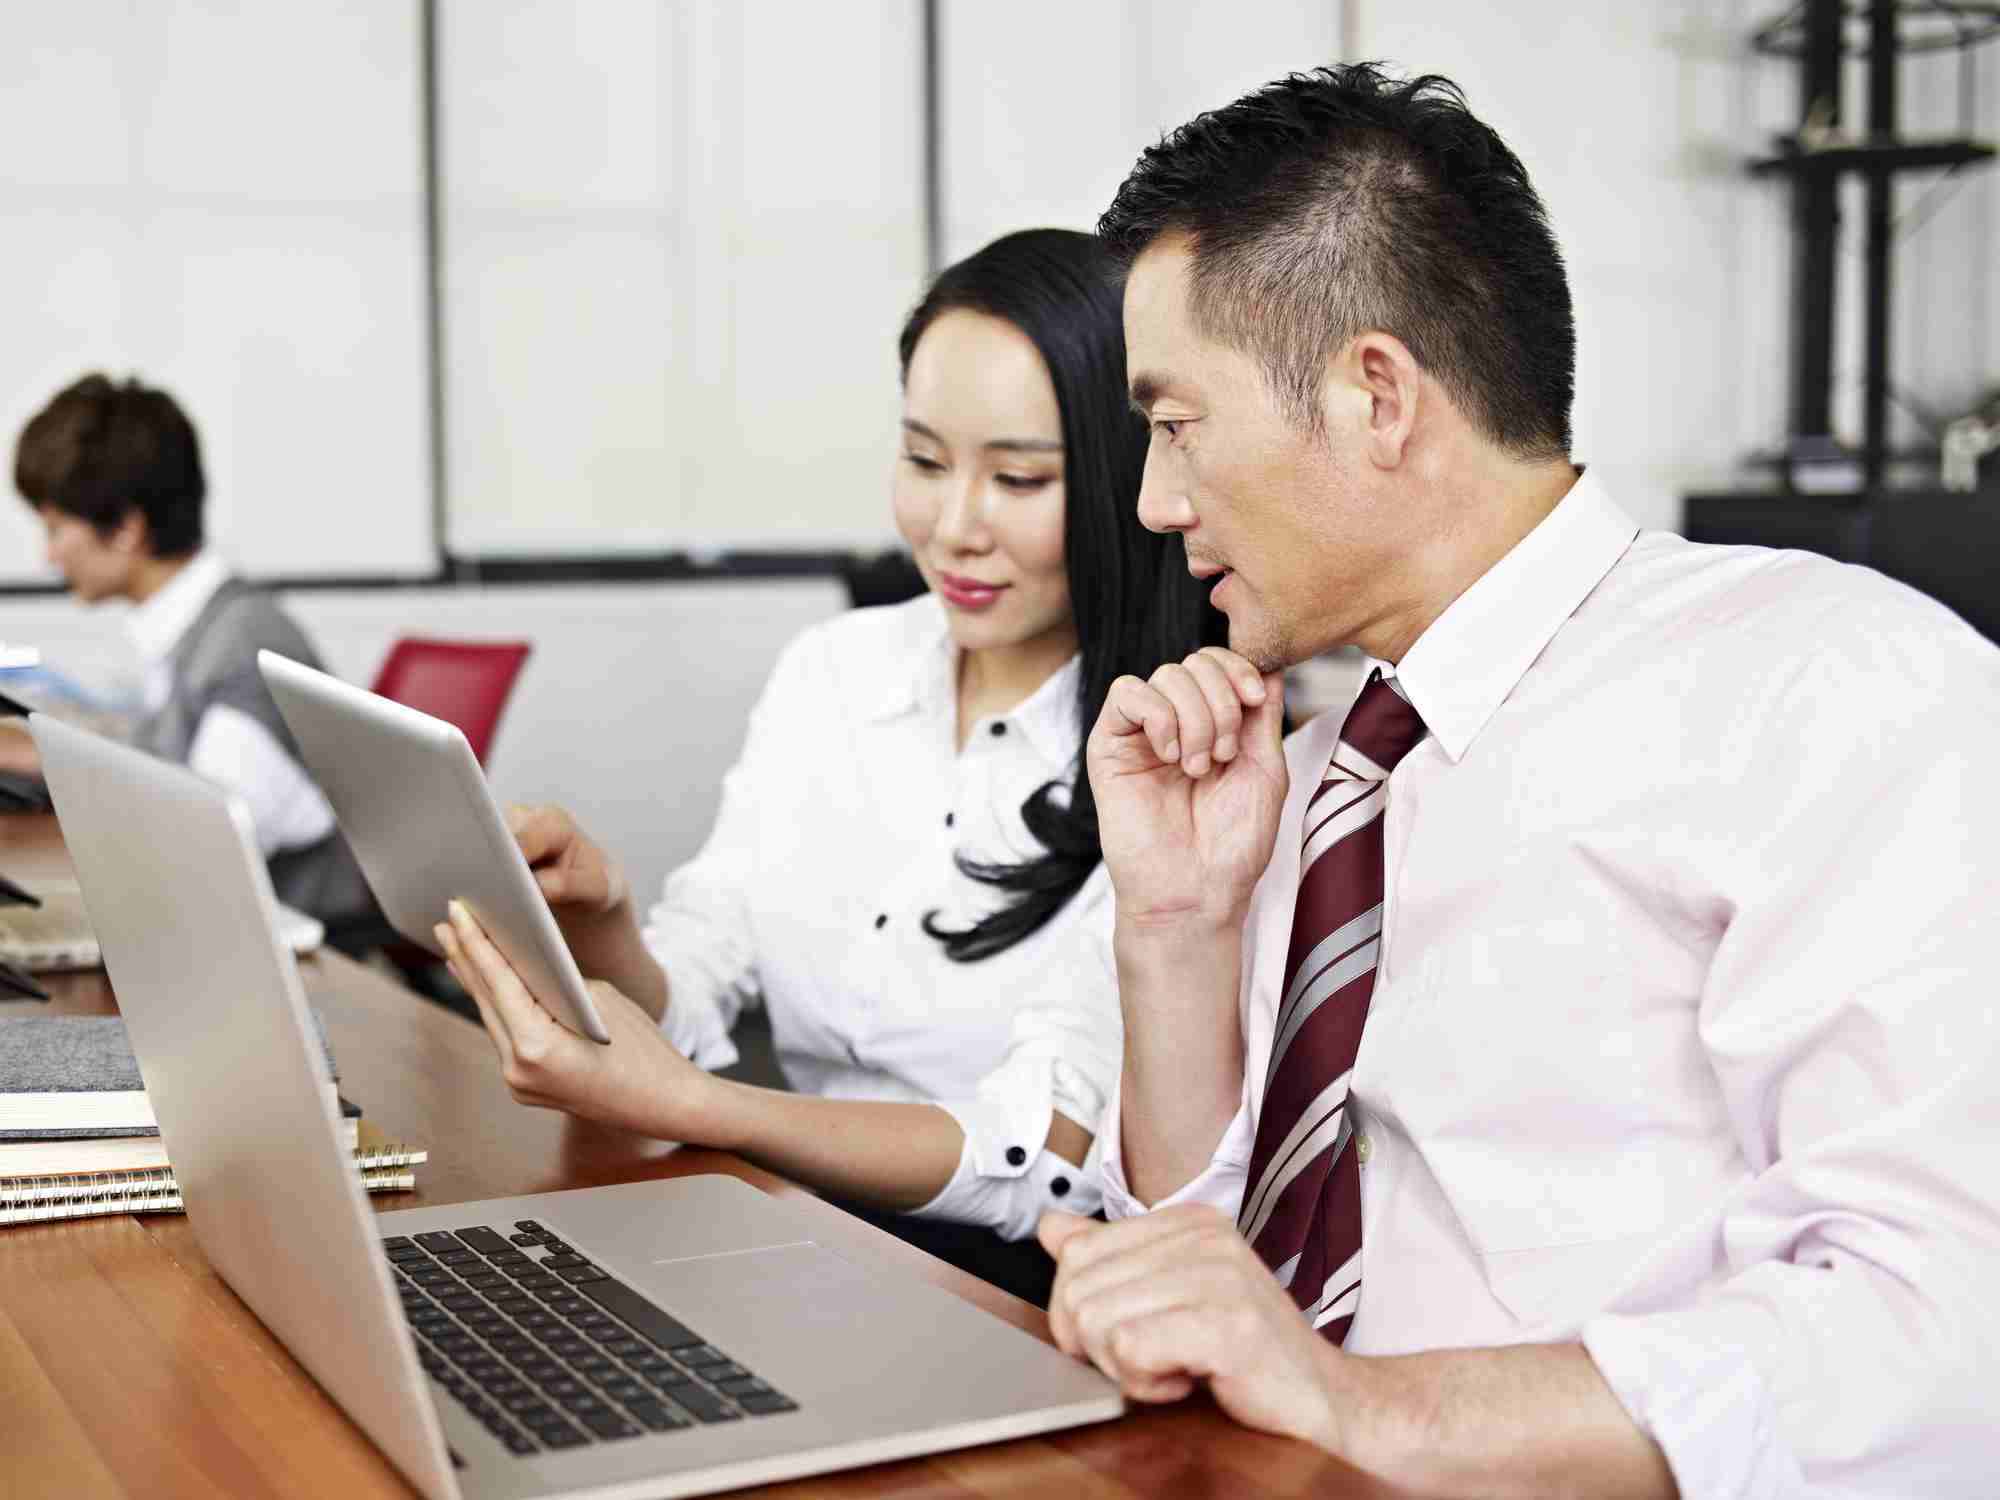 Asian-American male and female sitting next to each other with laptops looking down at a tablet . They are viewing a virtual training.